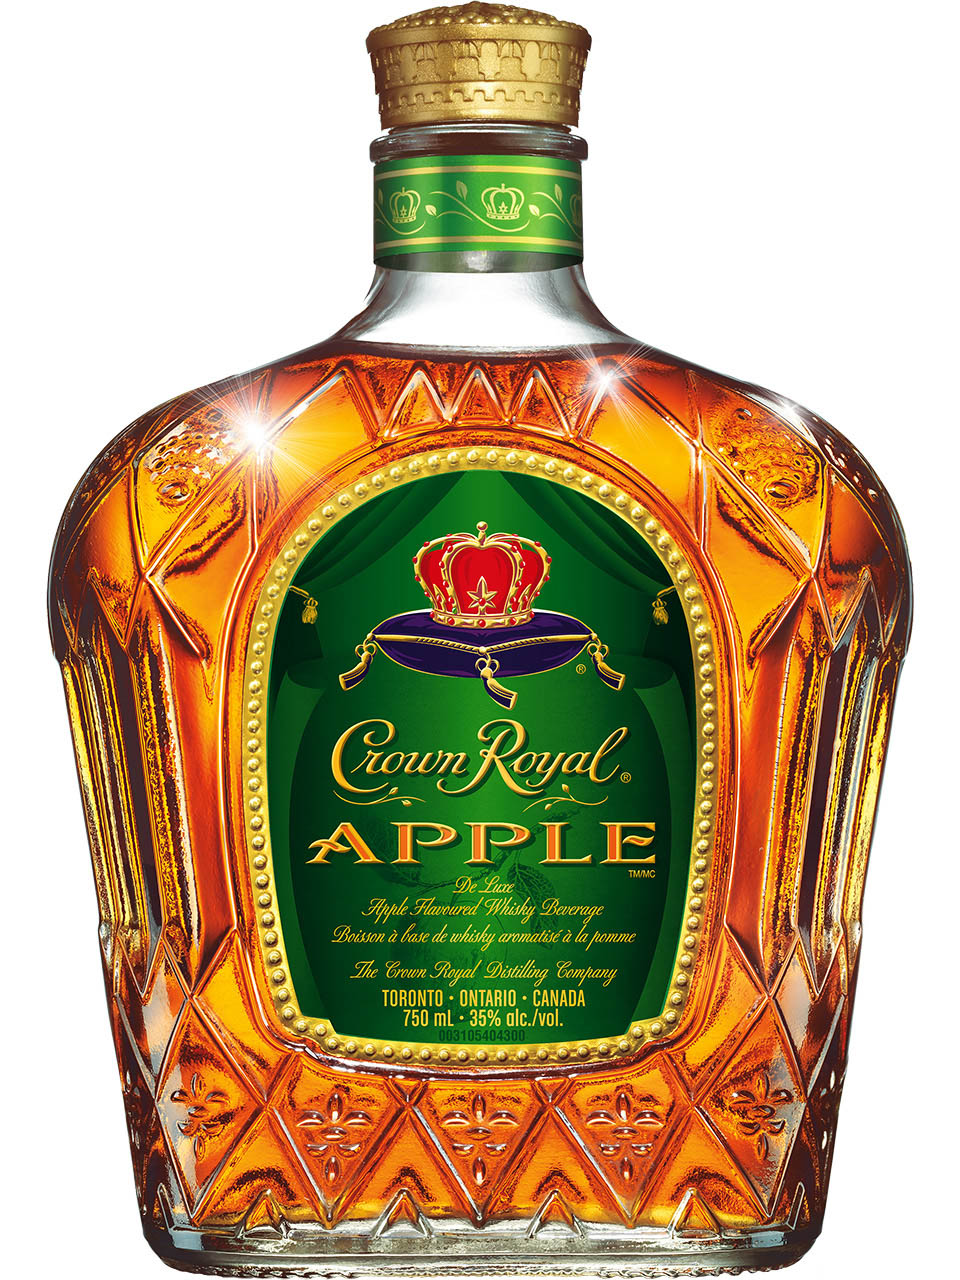 Crown Royal Apple Whisky